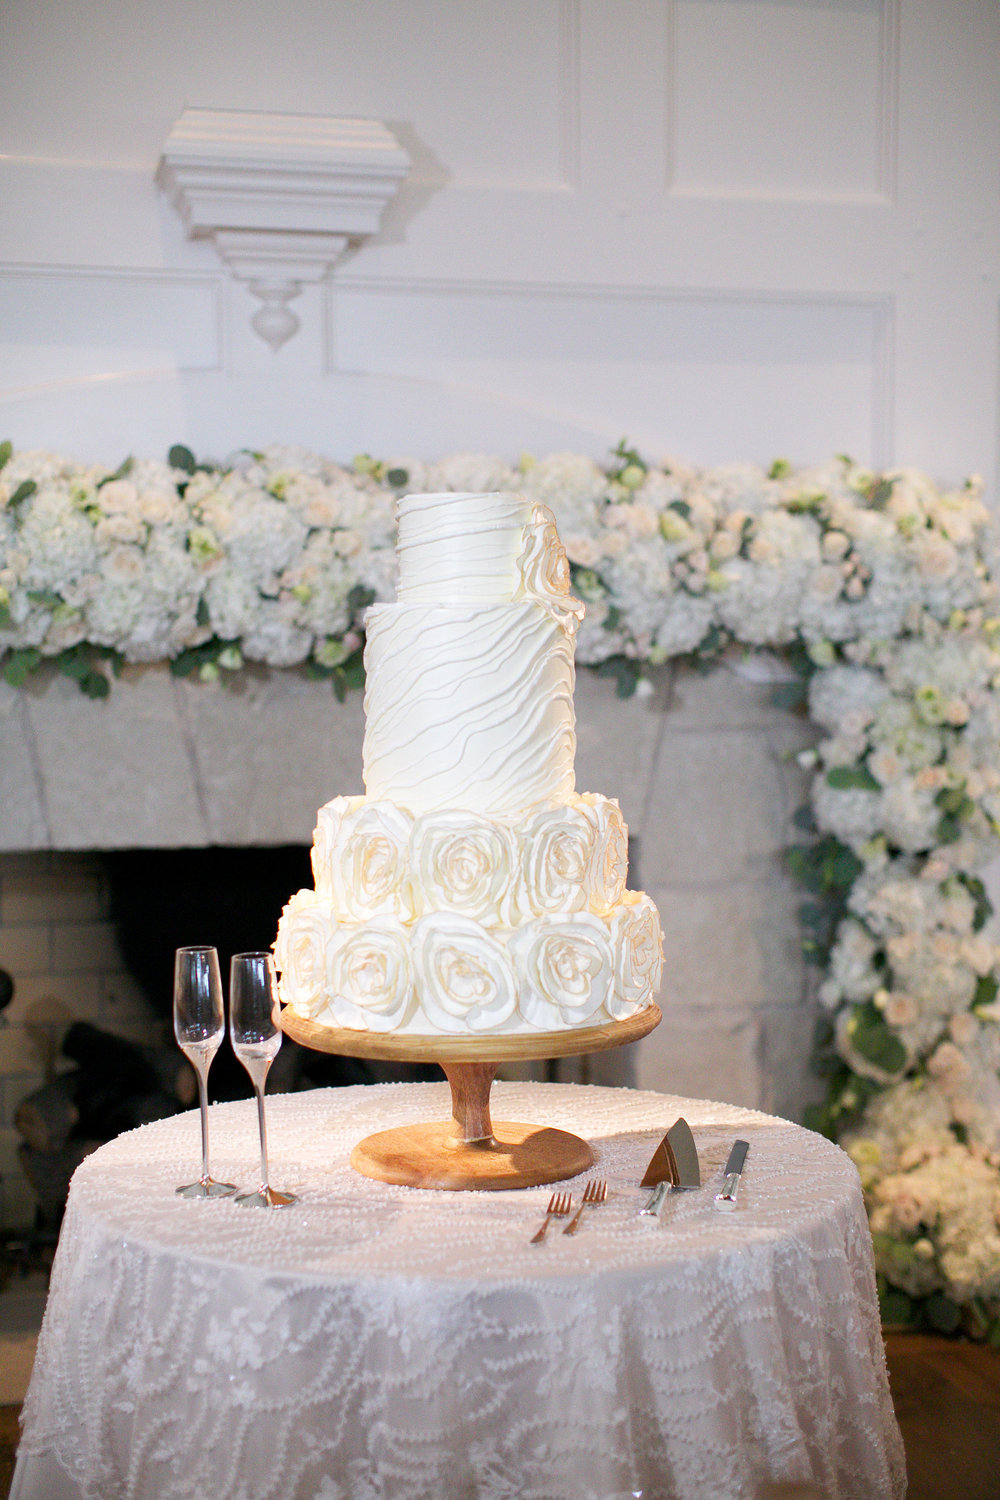 Cake Details - Kiawah Island, South Carolina - Fall Wedding - Julian Leaver Events